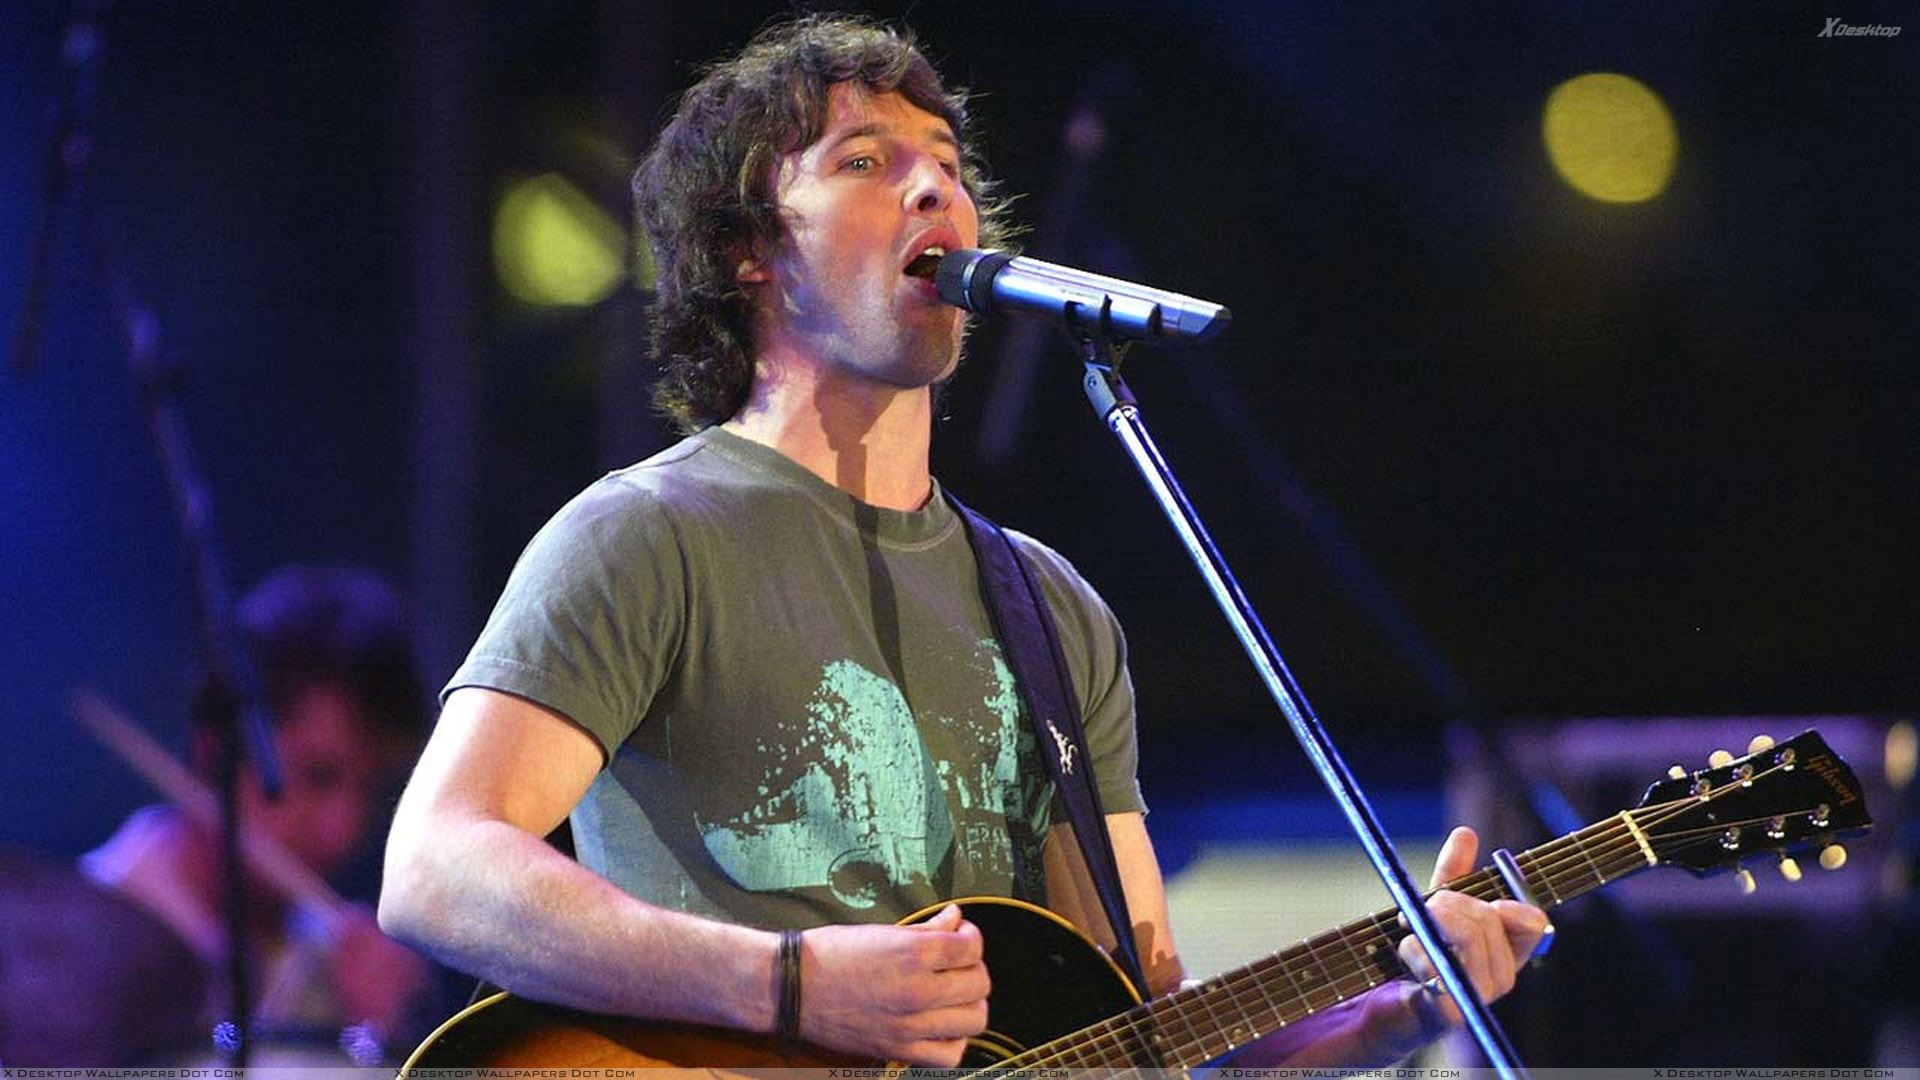 James Blunt Guitar In Hand N Singing On Stage Wallpaper